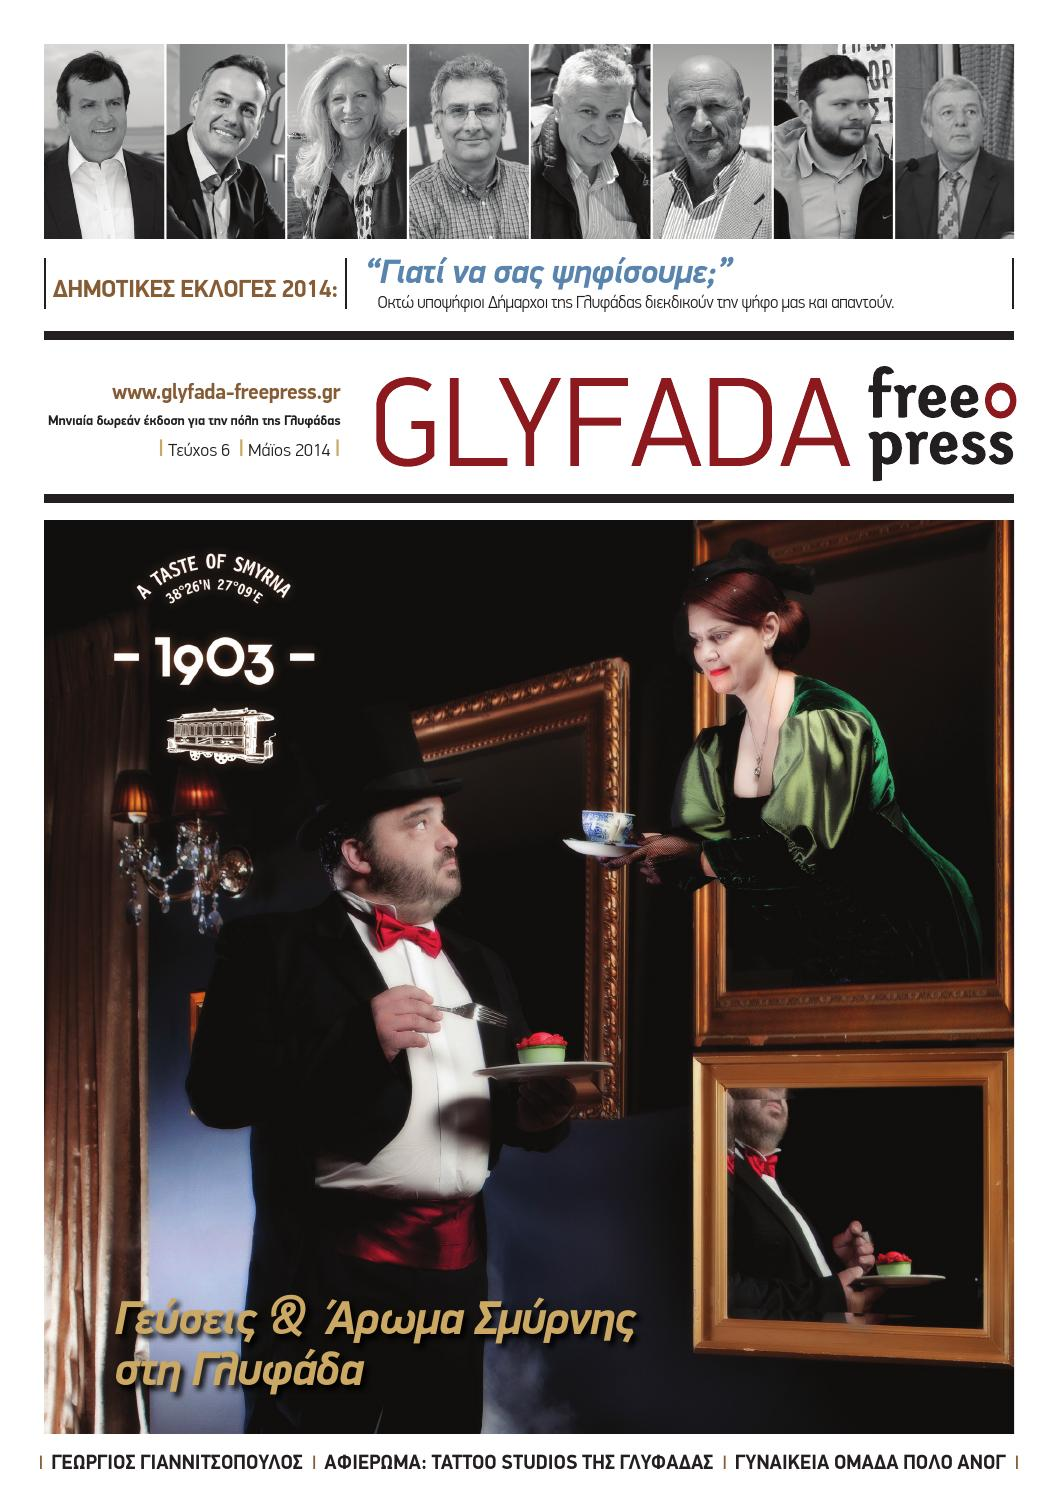 a3cbabb2f06 Glyfada Free Press #6 by Glyfada Free Press - issuu